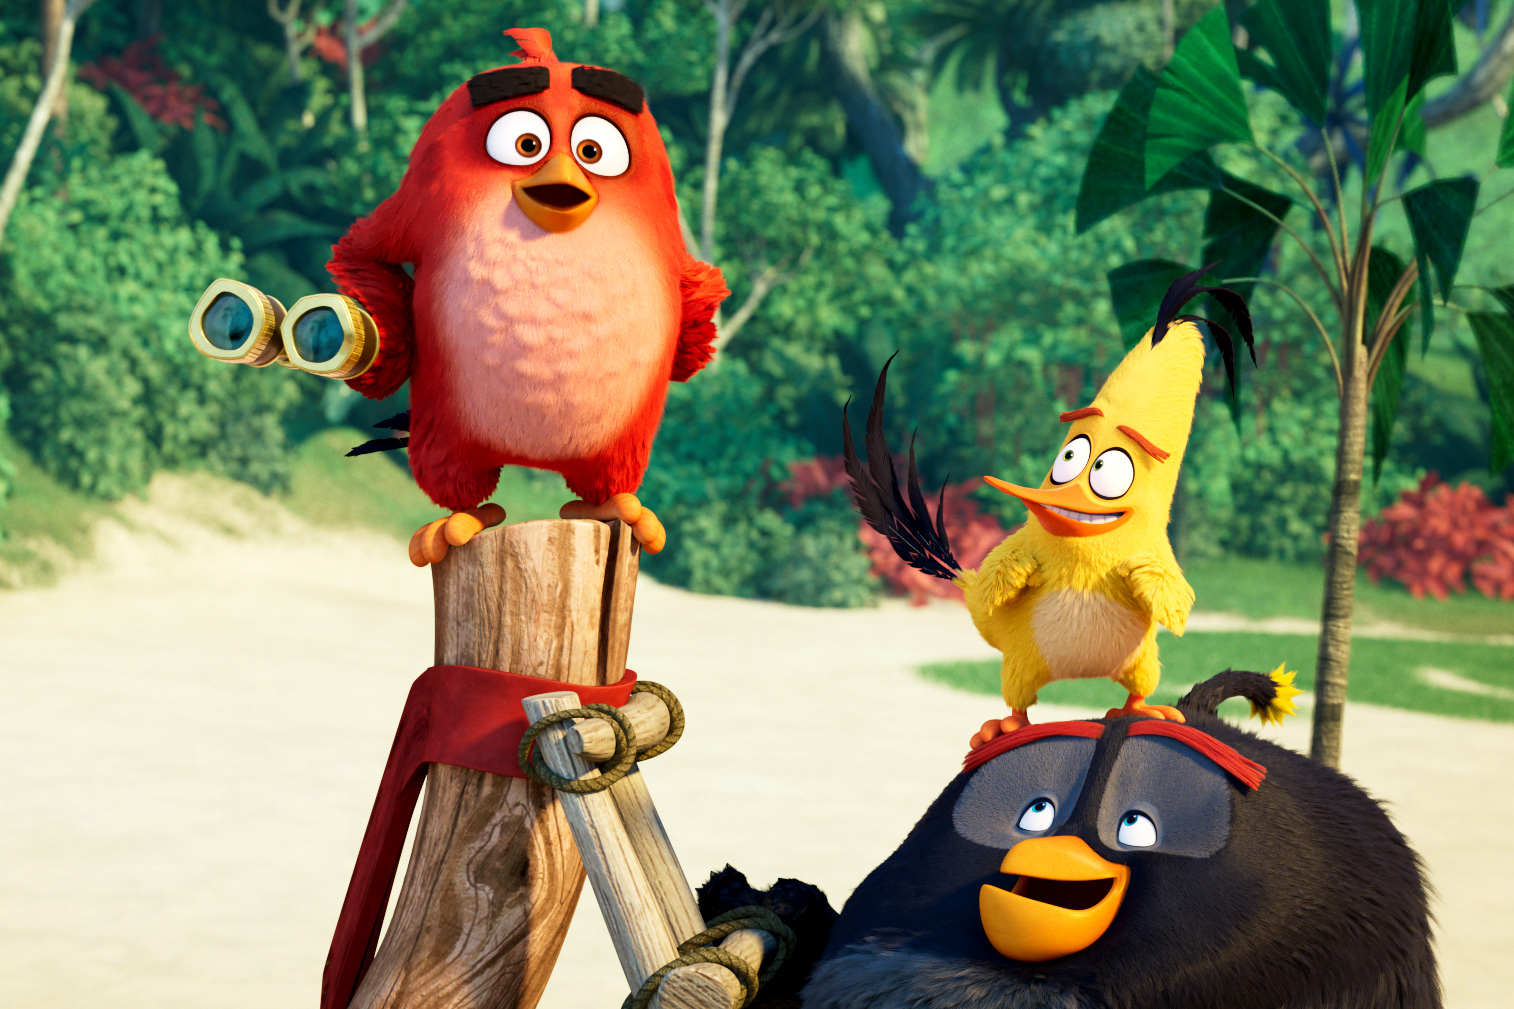 Animated characters Red (voiced by Jason Sudeikis), Chuck (voiced by Josh Gad), and Bomb (voiced by Danny McBride) appear in